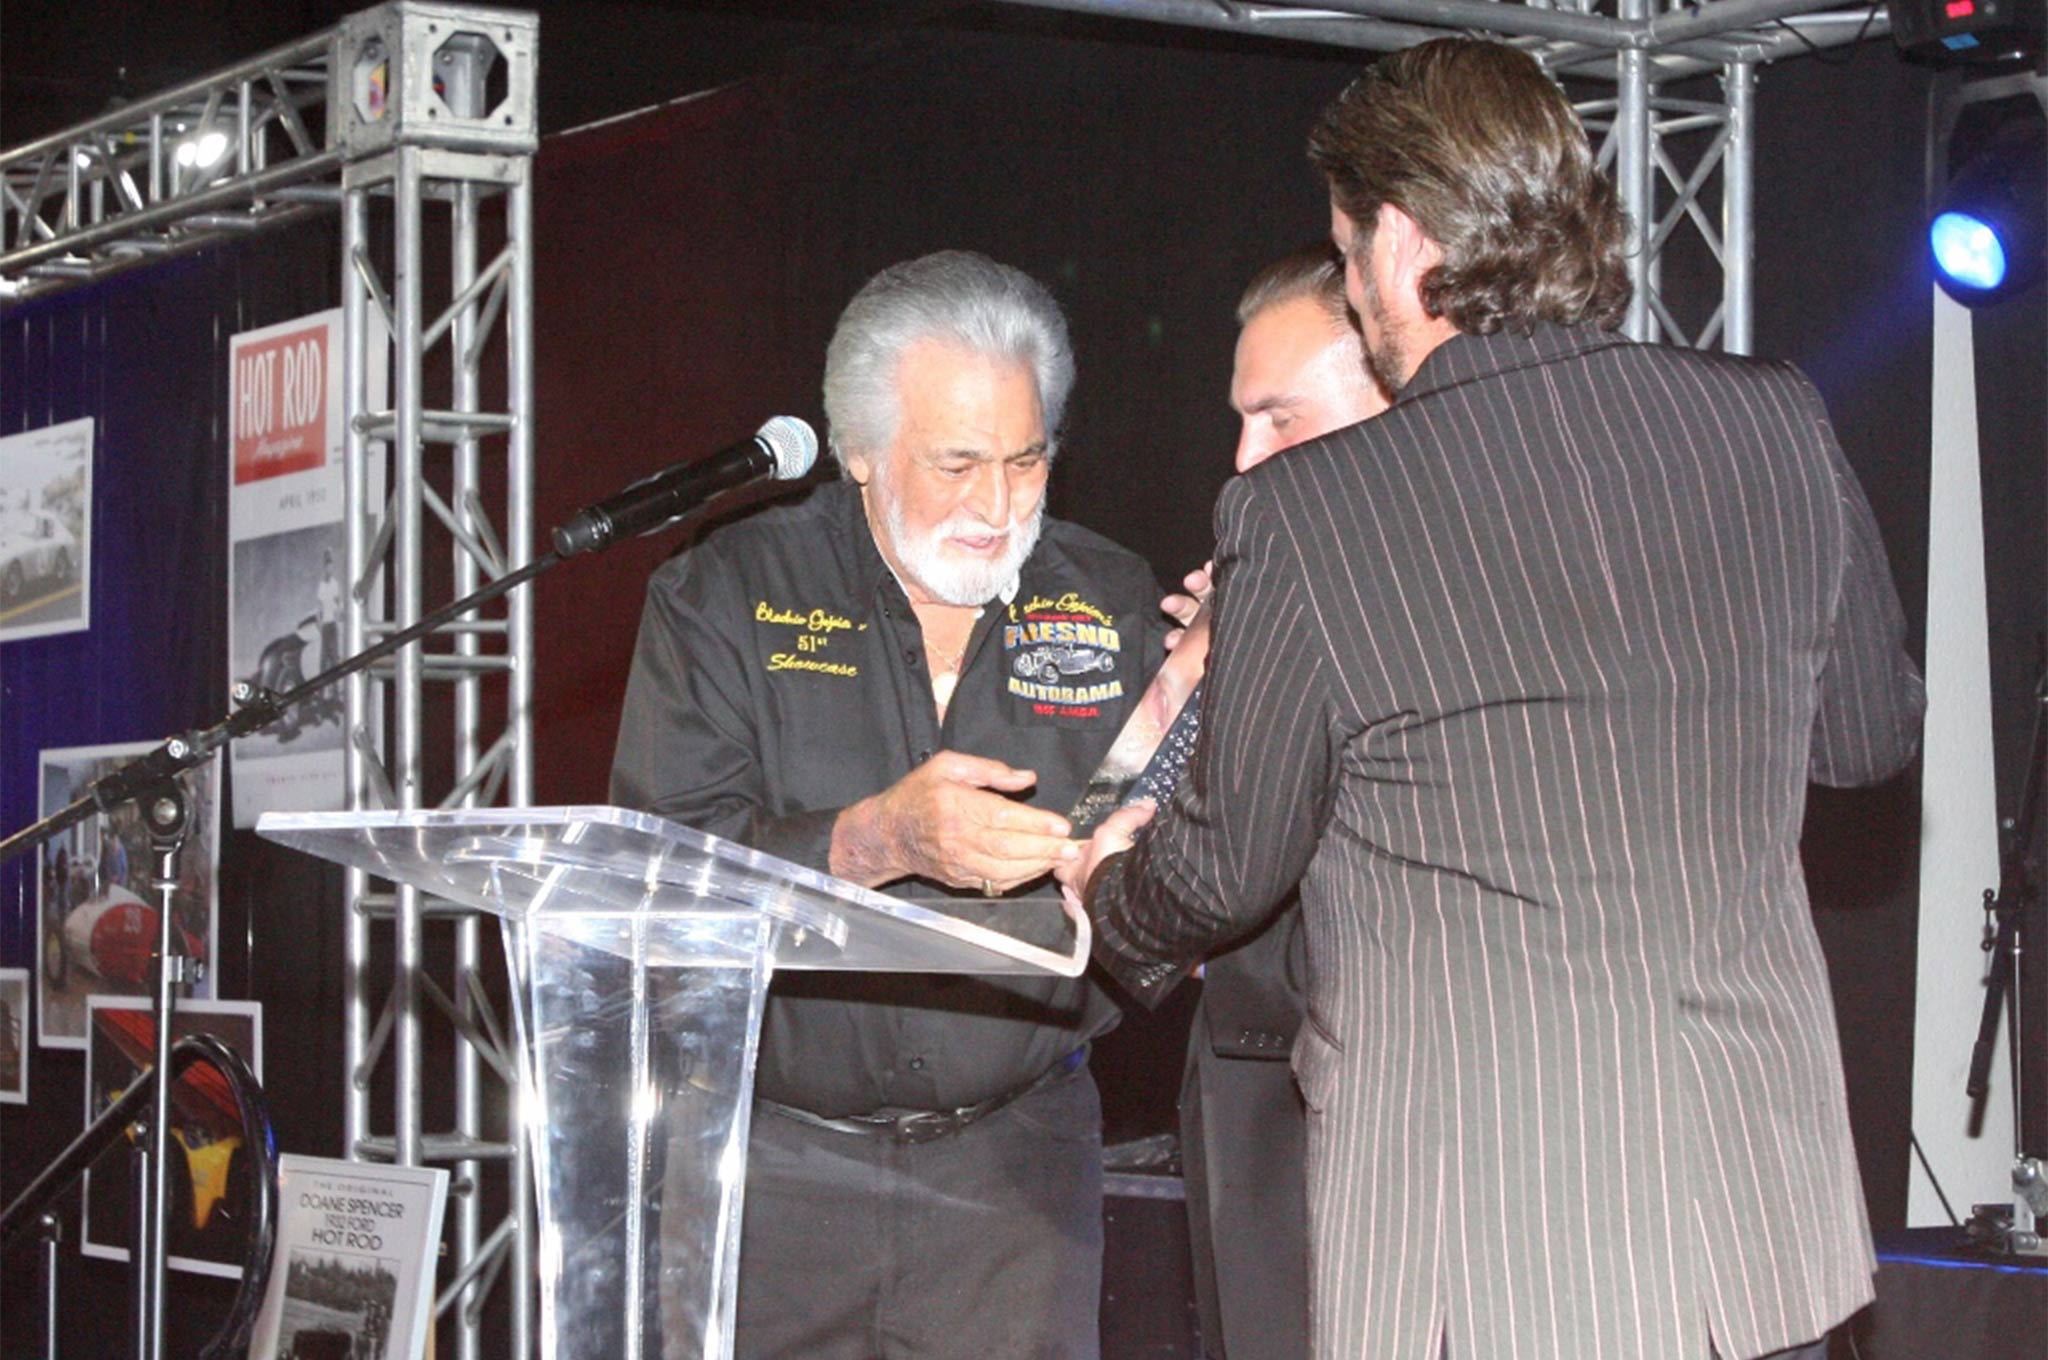 Blackie Gejeian receives his Lifetime Achievement Award from Dave Shuten and Beau Boeckmann at Galpin Auto Sports.